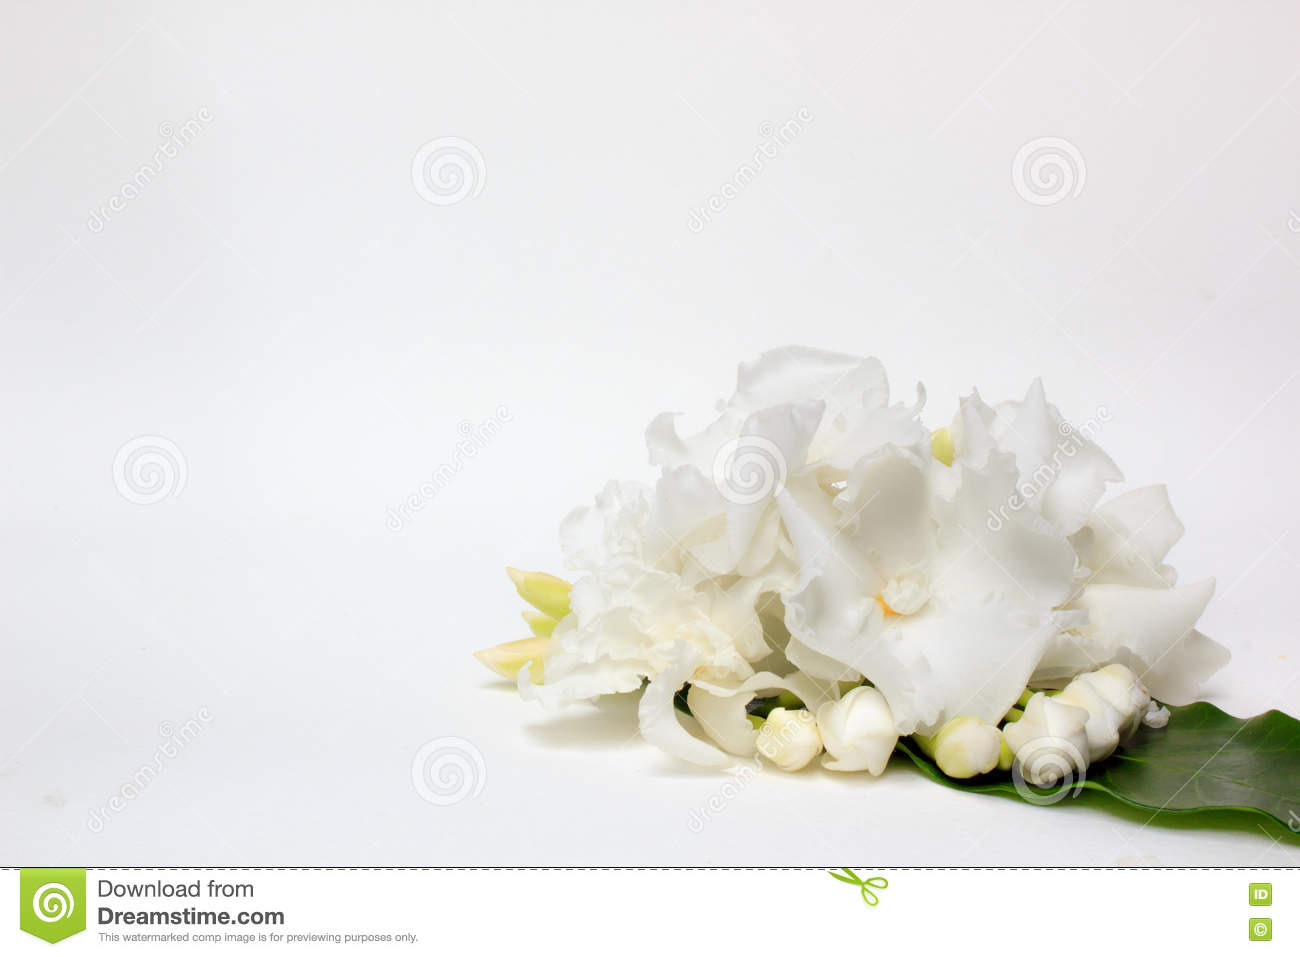 Beautiful bouquet of white gardenia jasminoides flower stock photo beautiful bouquet of white gardenia jasminoides flower or cape jasmine with bud isolated on a white background with copy space izmirmasajfo